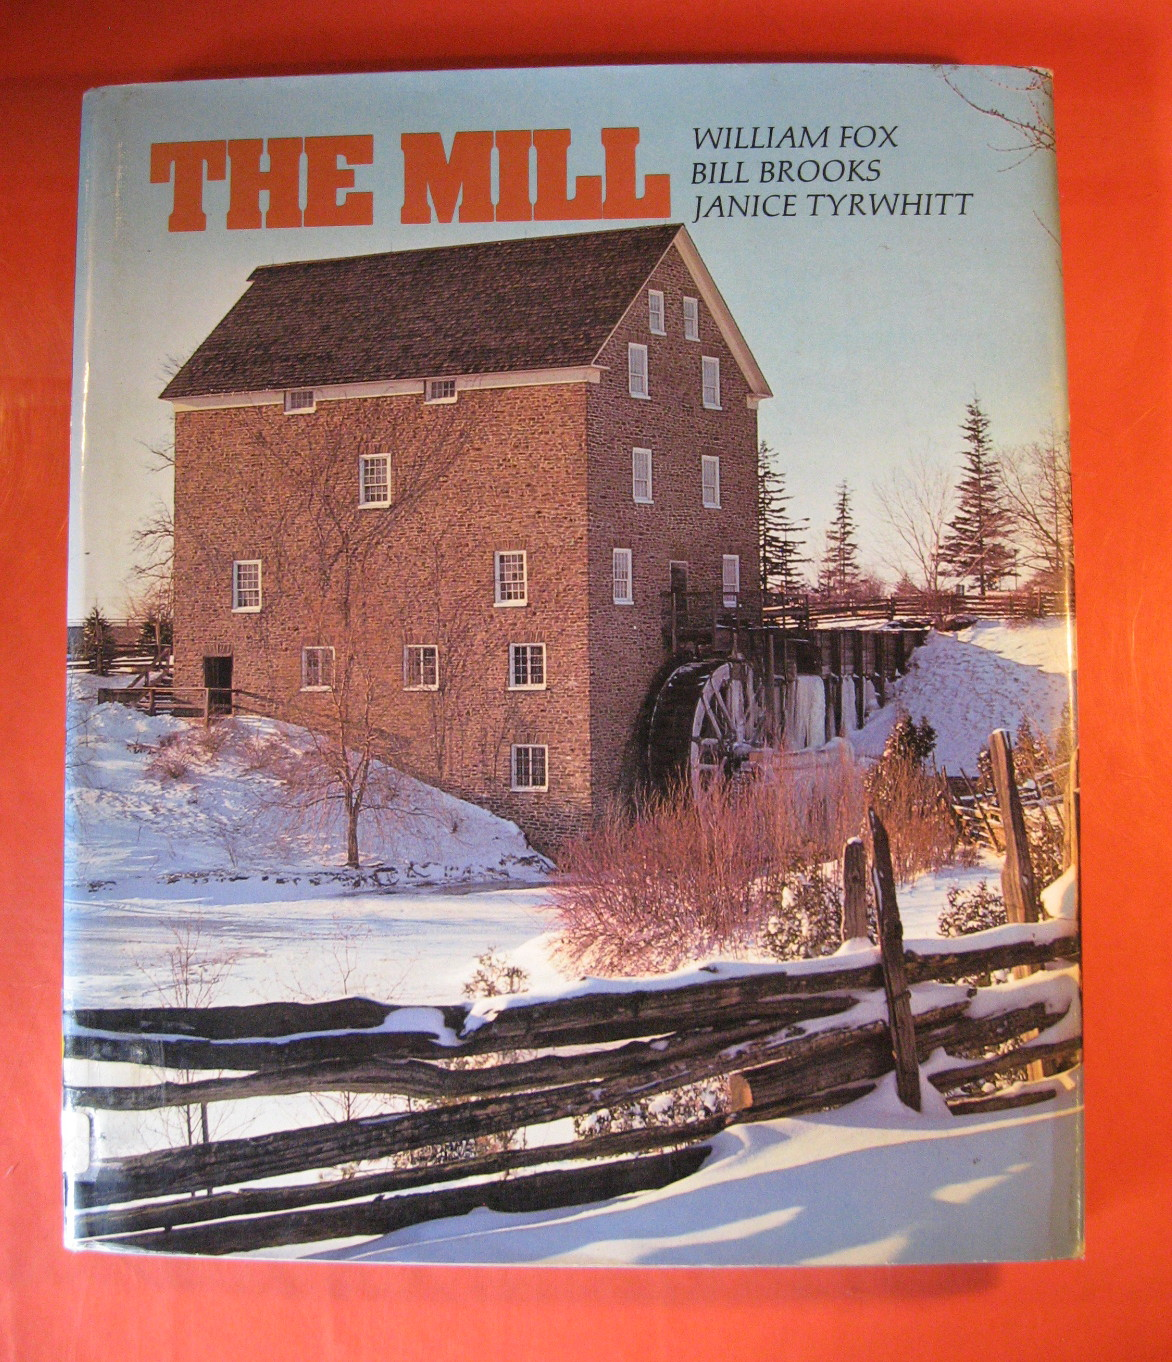 The Mill, Fox, William; Brooks, Bill; Tyrwhitt, Janice